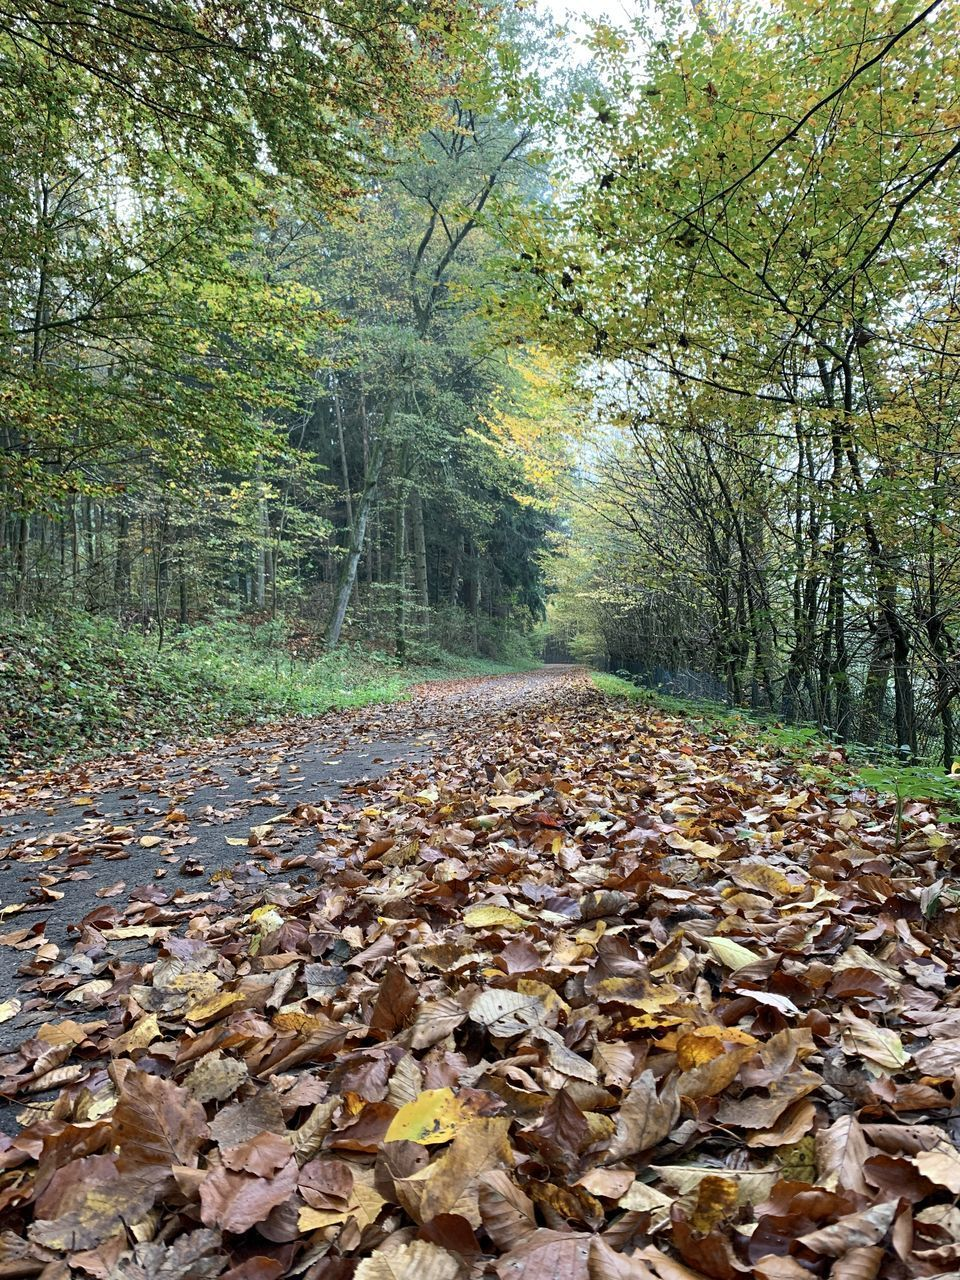 FALLEN LEAVES ON LAND IN FOREST